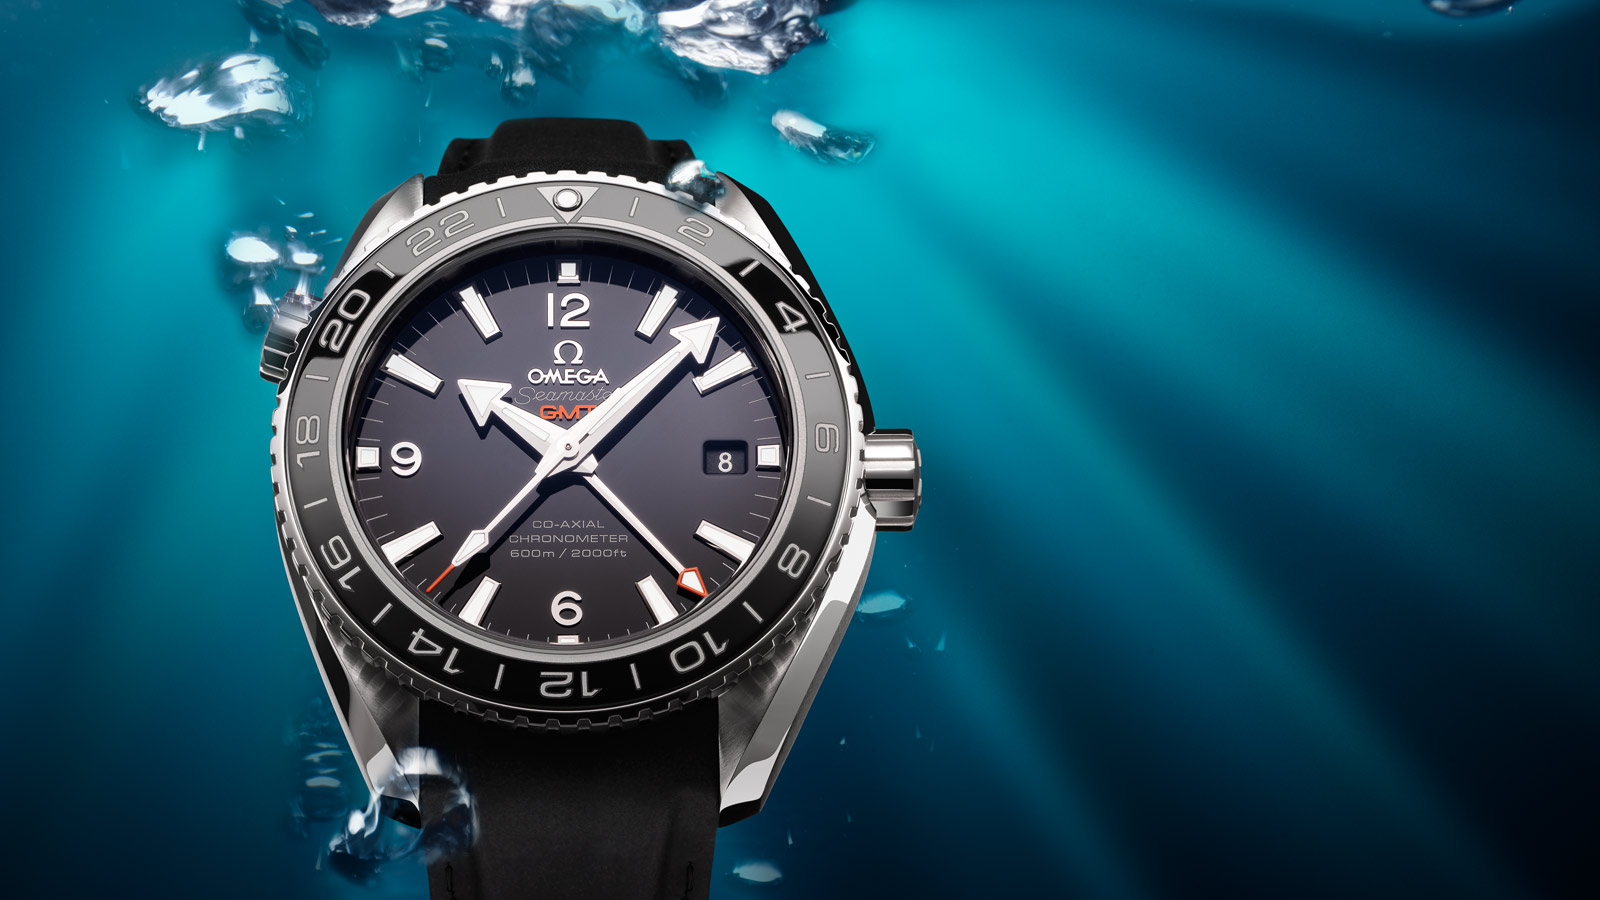 Seamaster Planet Ocean 600M Planet Ocean 600M Omega Co‑axial GMT 43,5 mm - 232.32.44.22.01.001 - Просмотреть 1